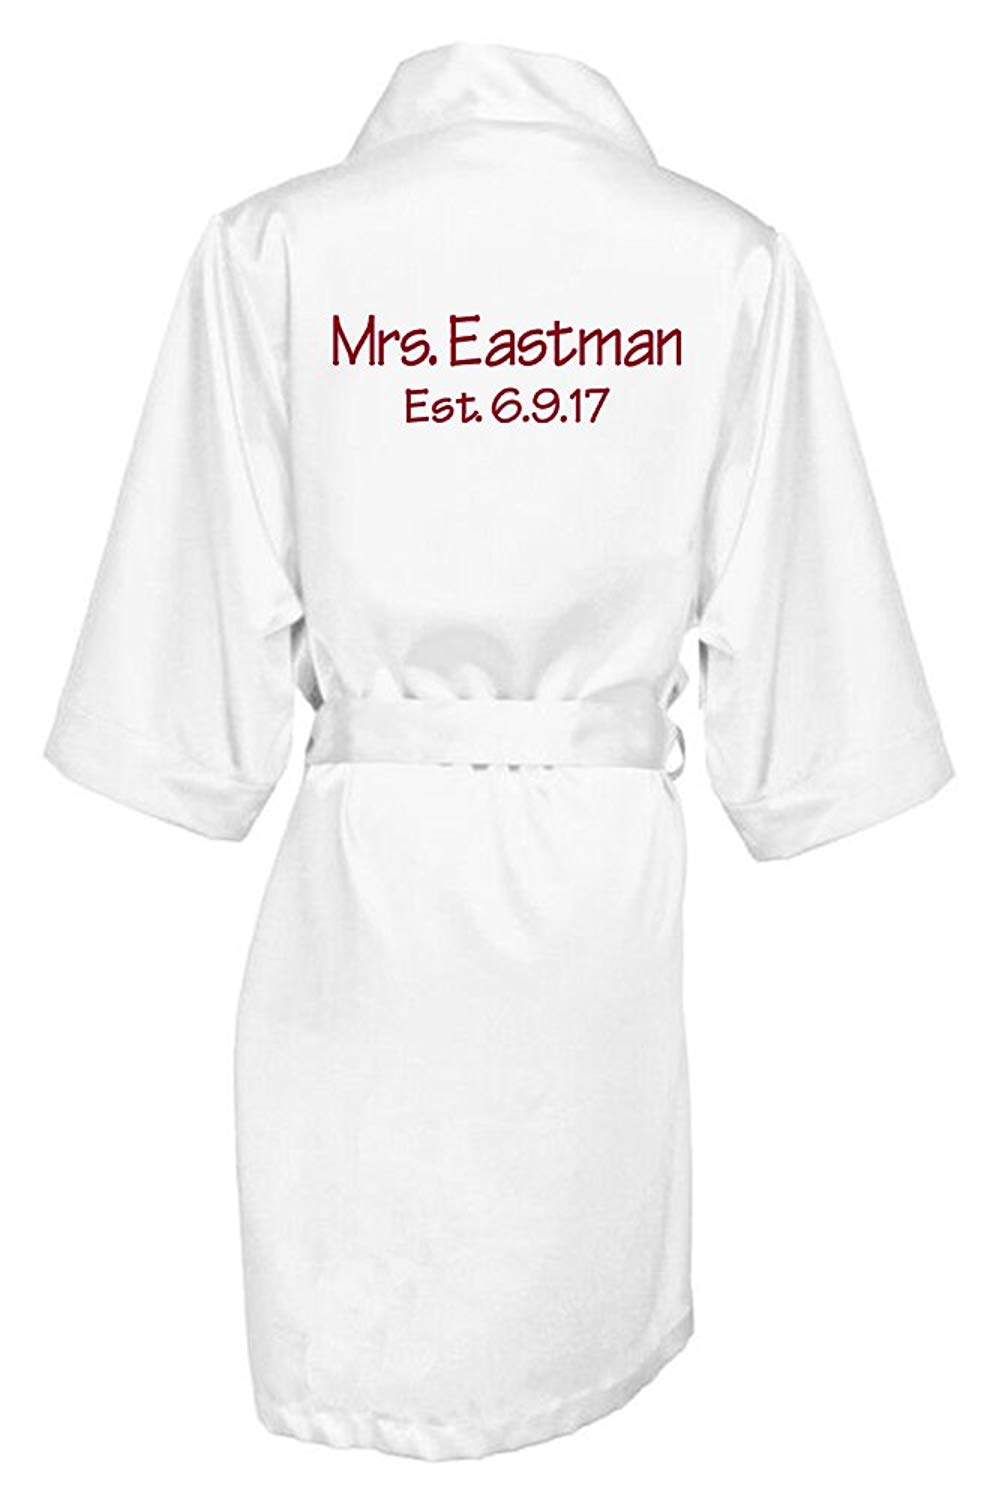 474509cf3d Get Quotations · Zynotti Women s Personalized Embroidered Mrs. with  Established Date Satin Bridal Robe - Bride Wedding Party